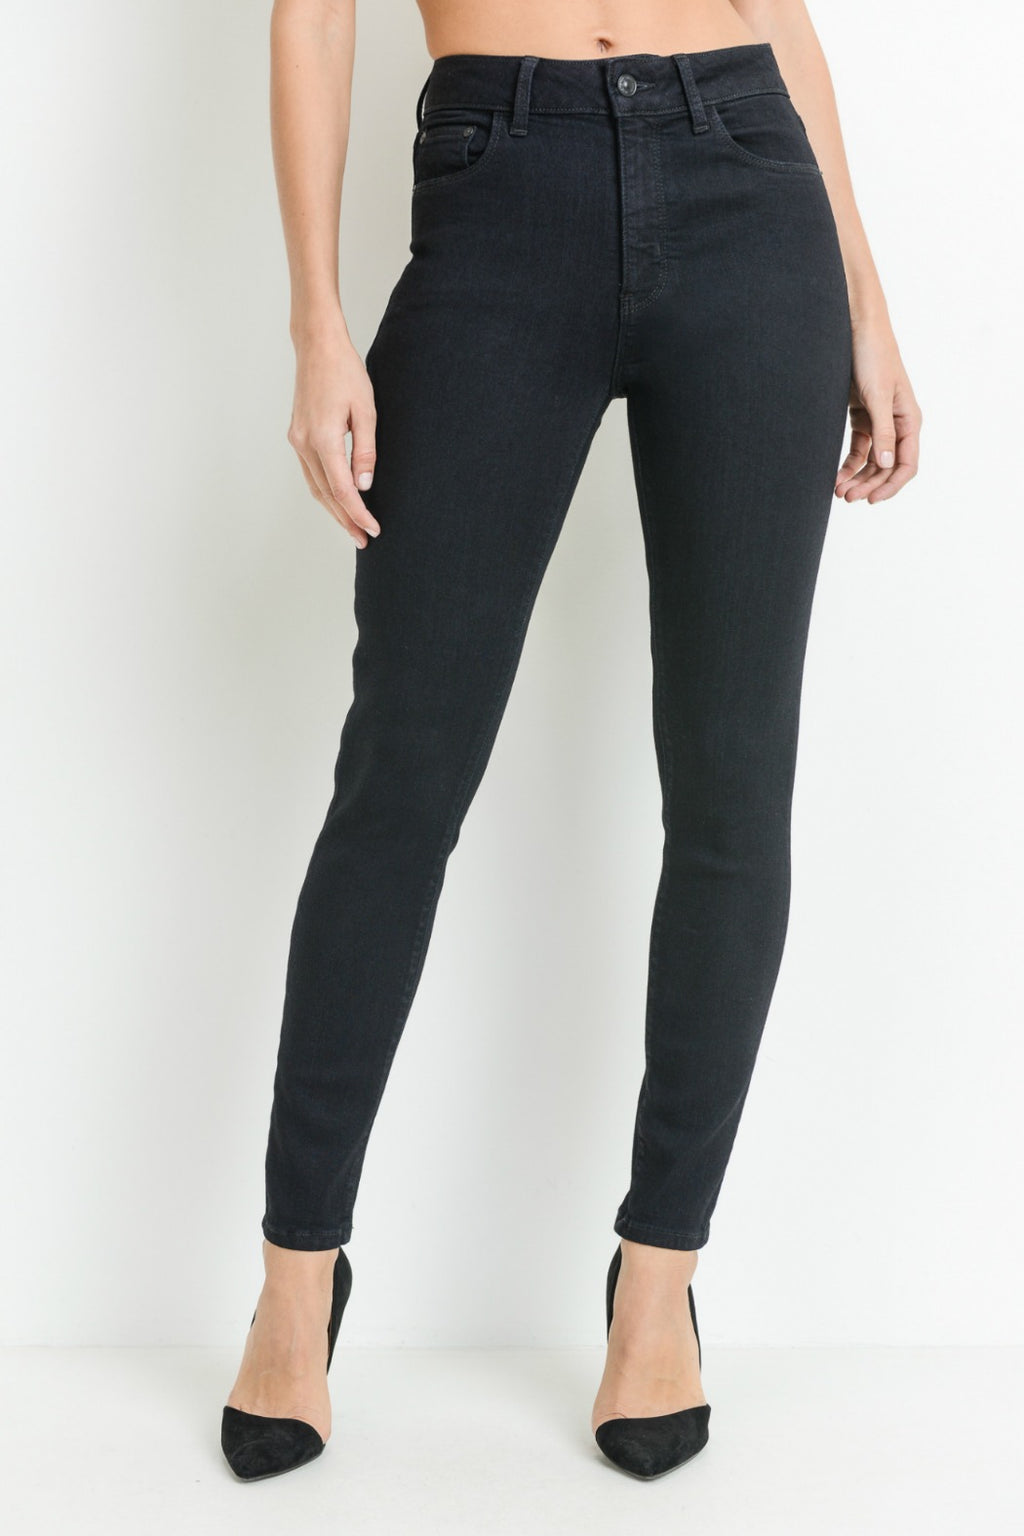 "Just Black Denim 11"" High Rise Basic Skinny"